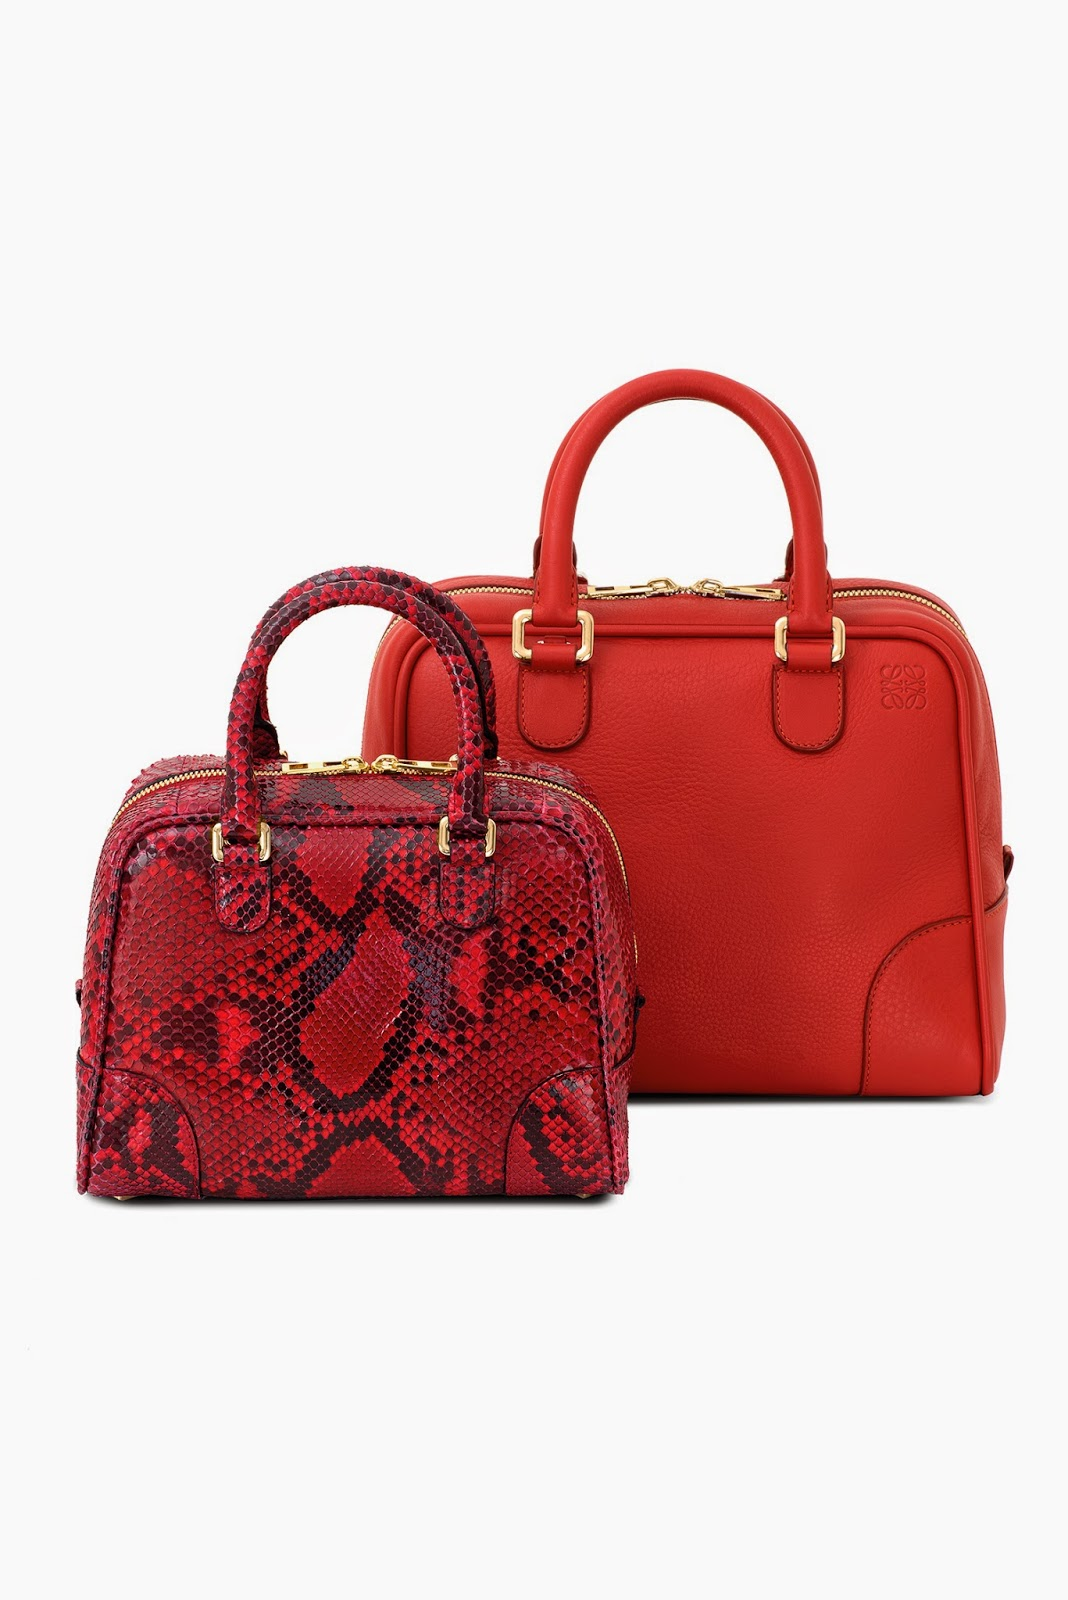 Loewe's Chinese New Year Collection